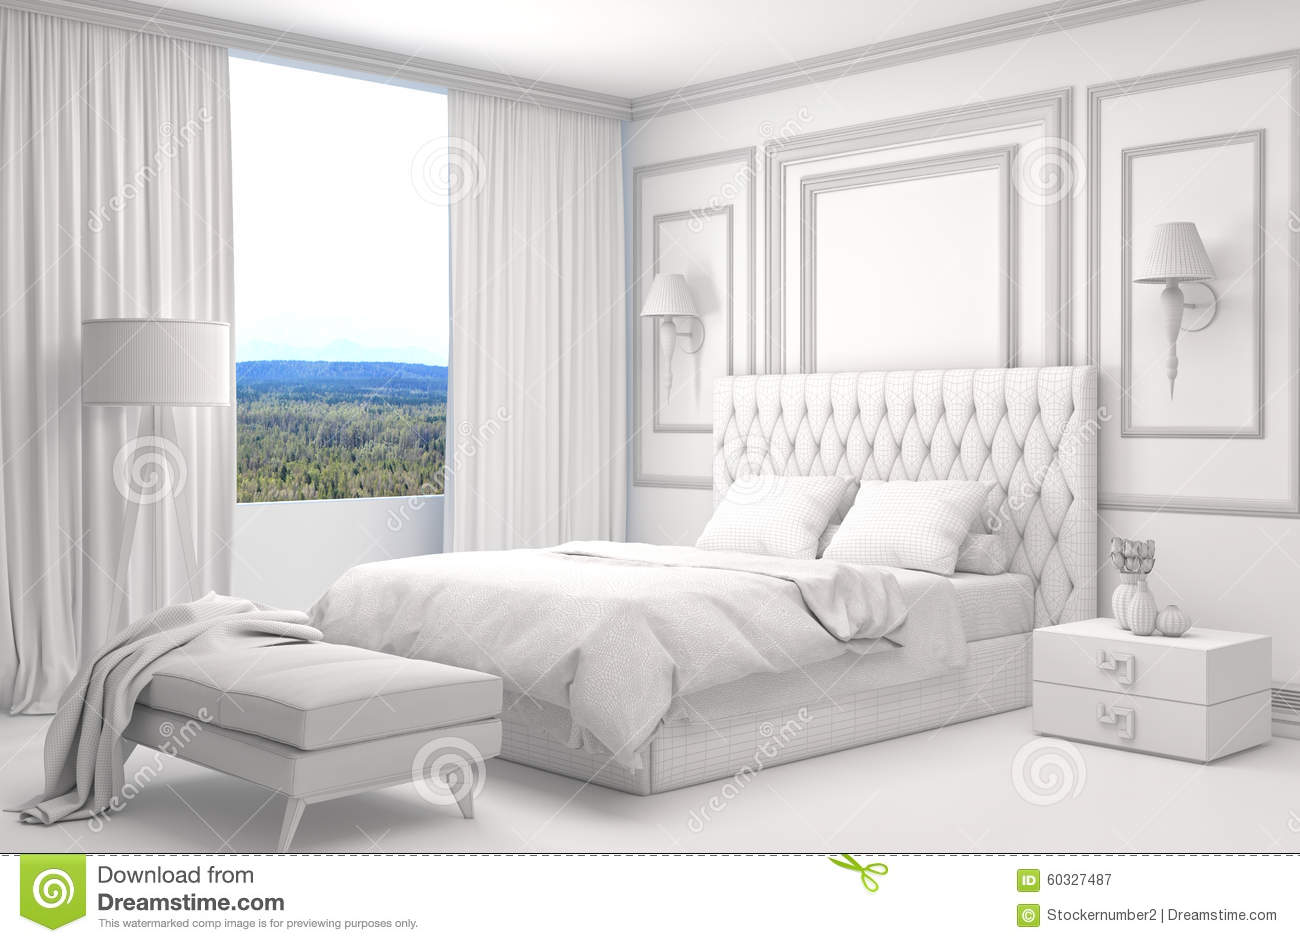 Bedroom Interior With CAD Wireframe Mesh. 3D Illustration Stock ...